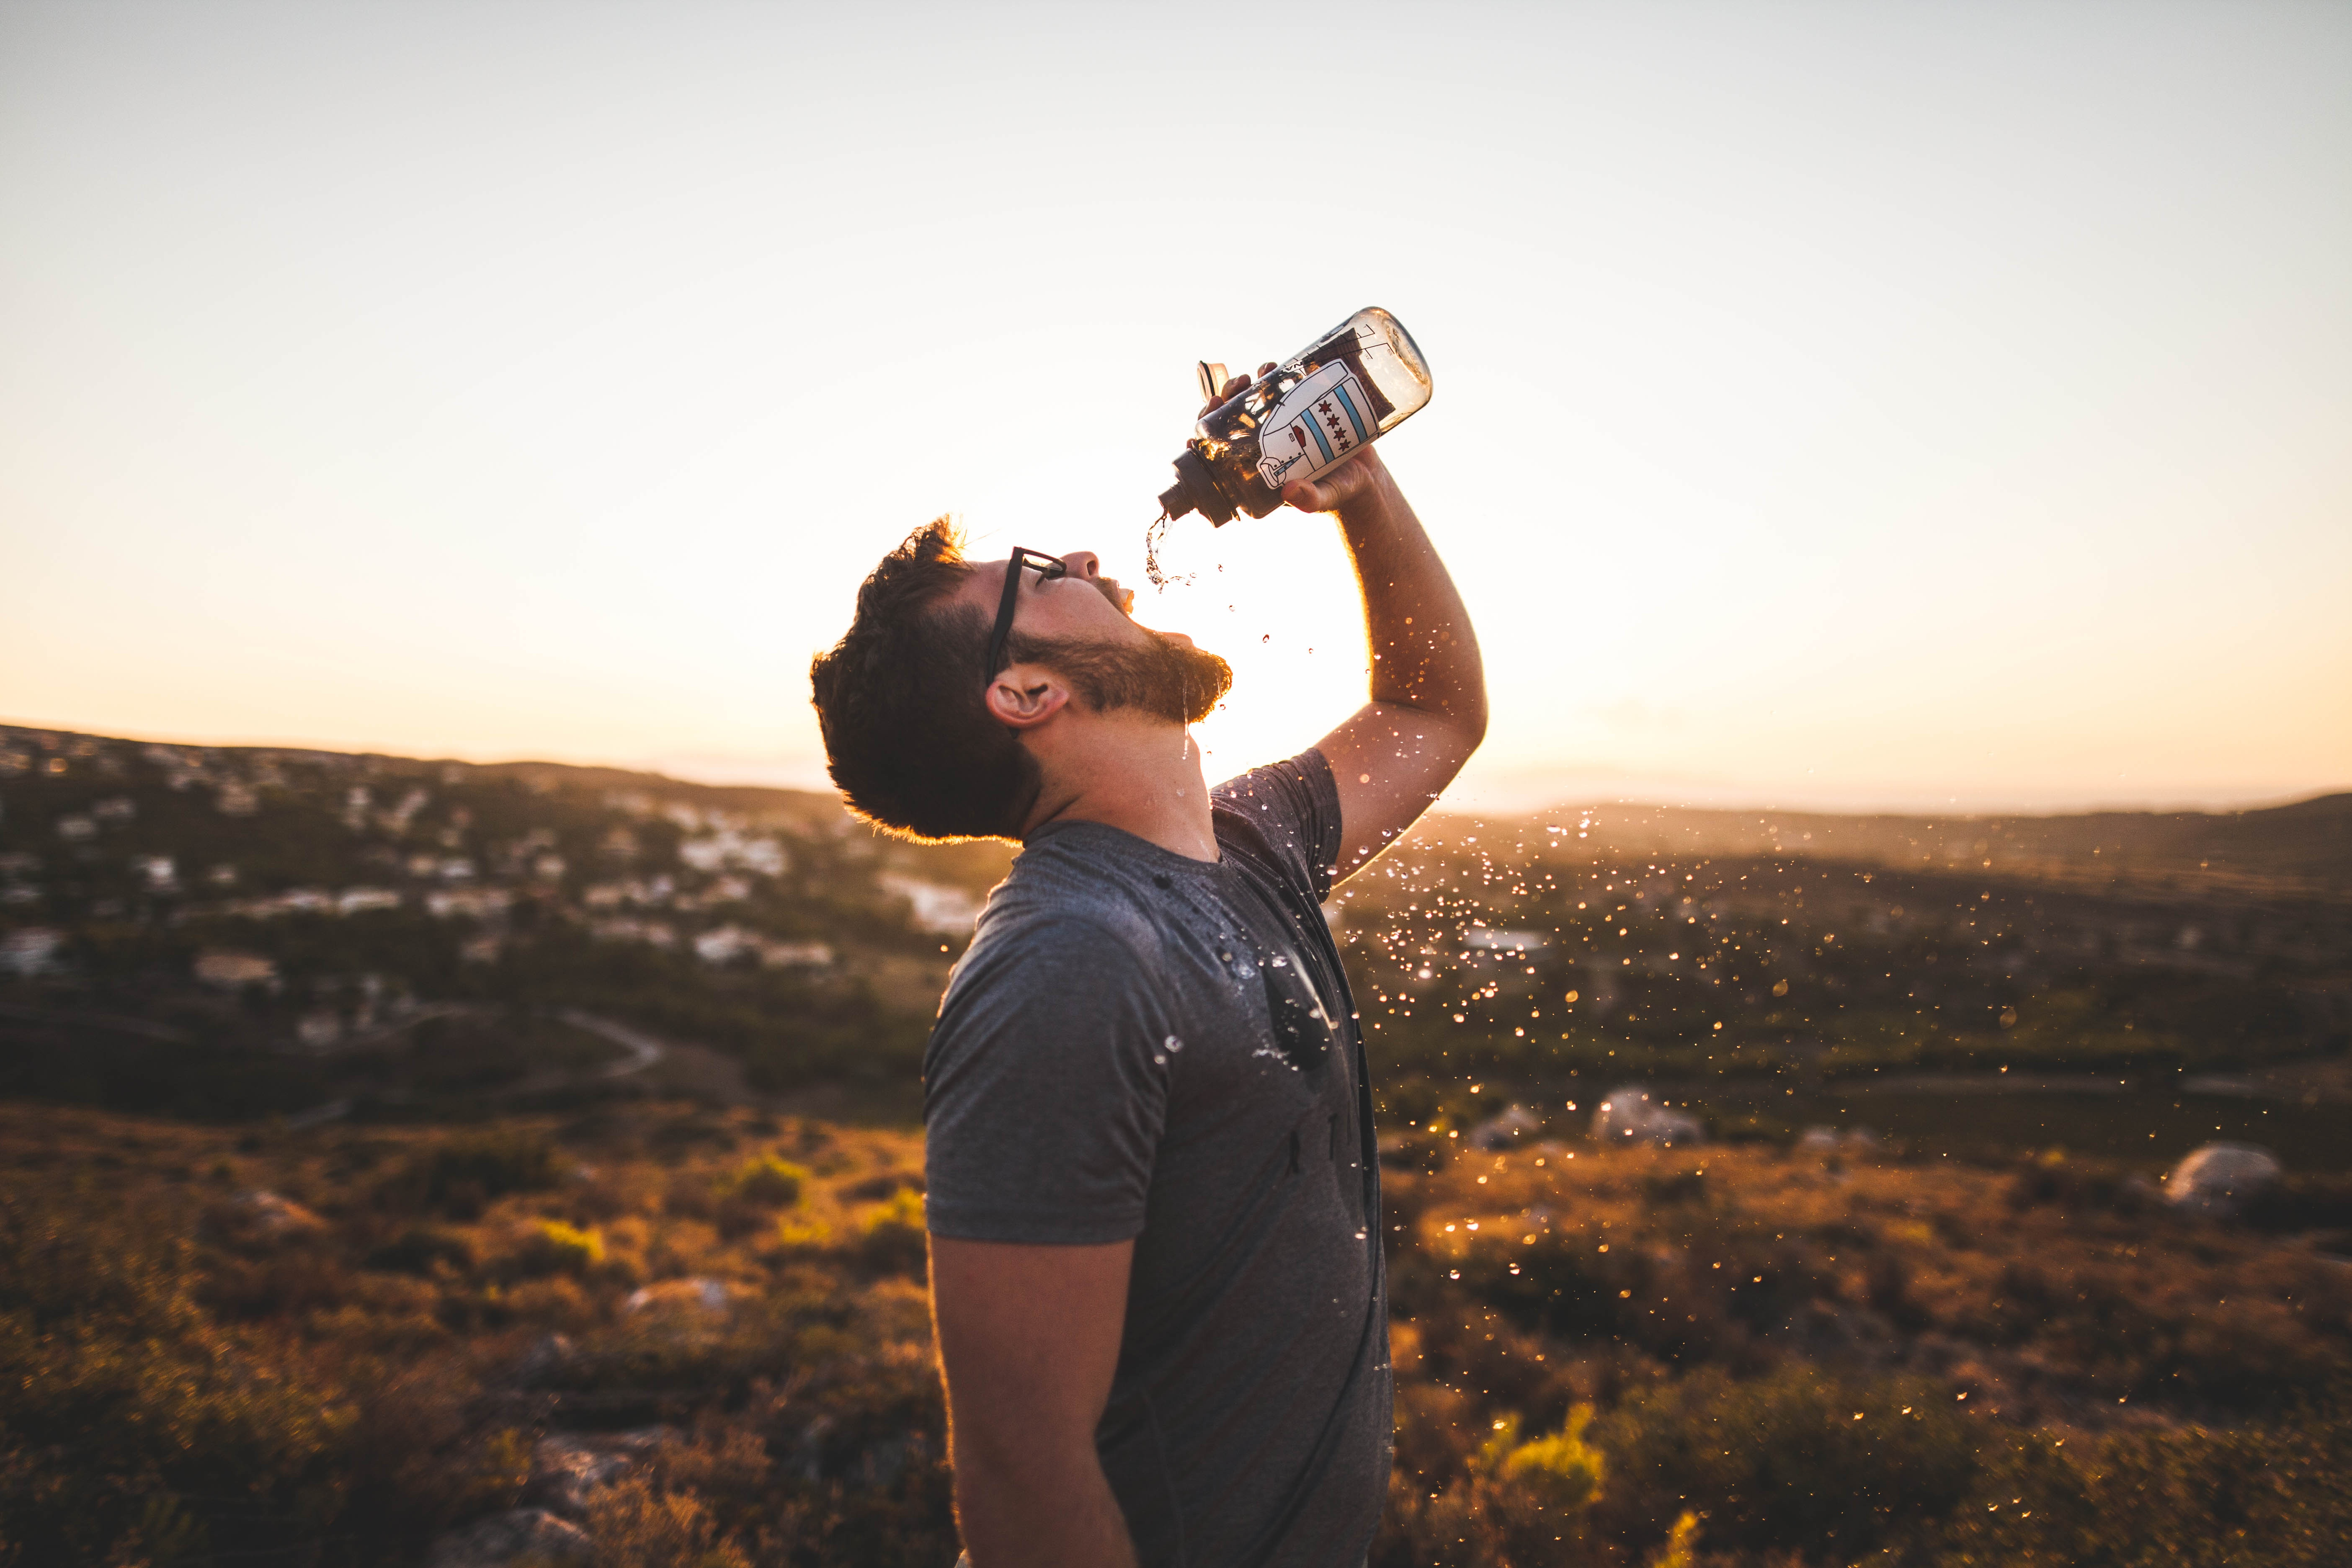 An athlete drinking water to hydrate